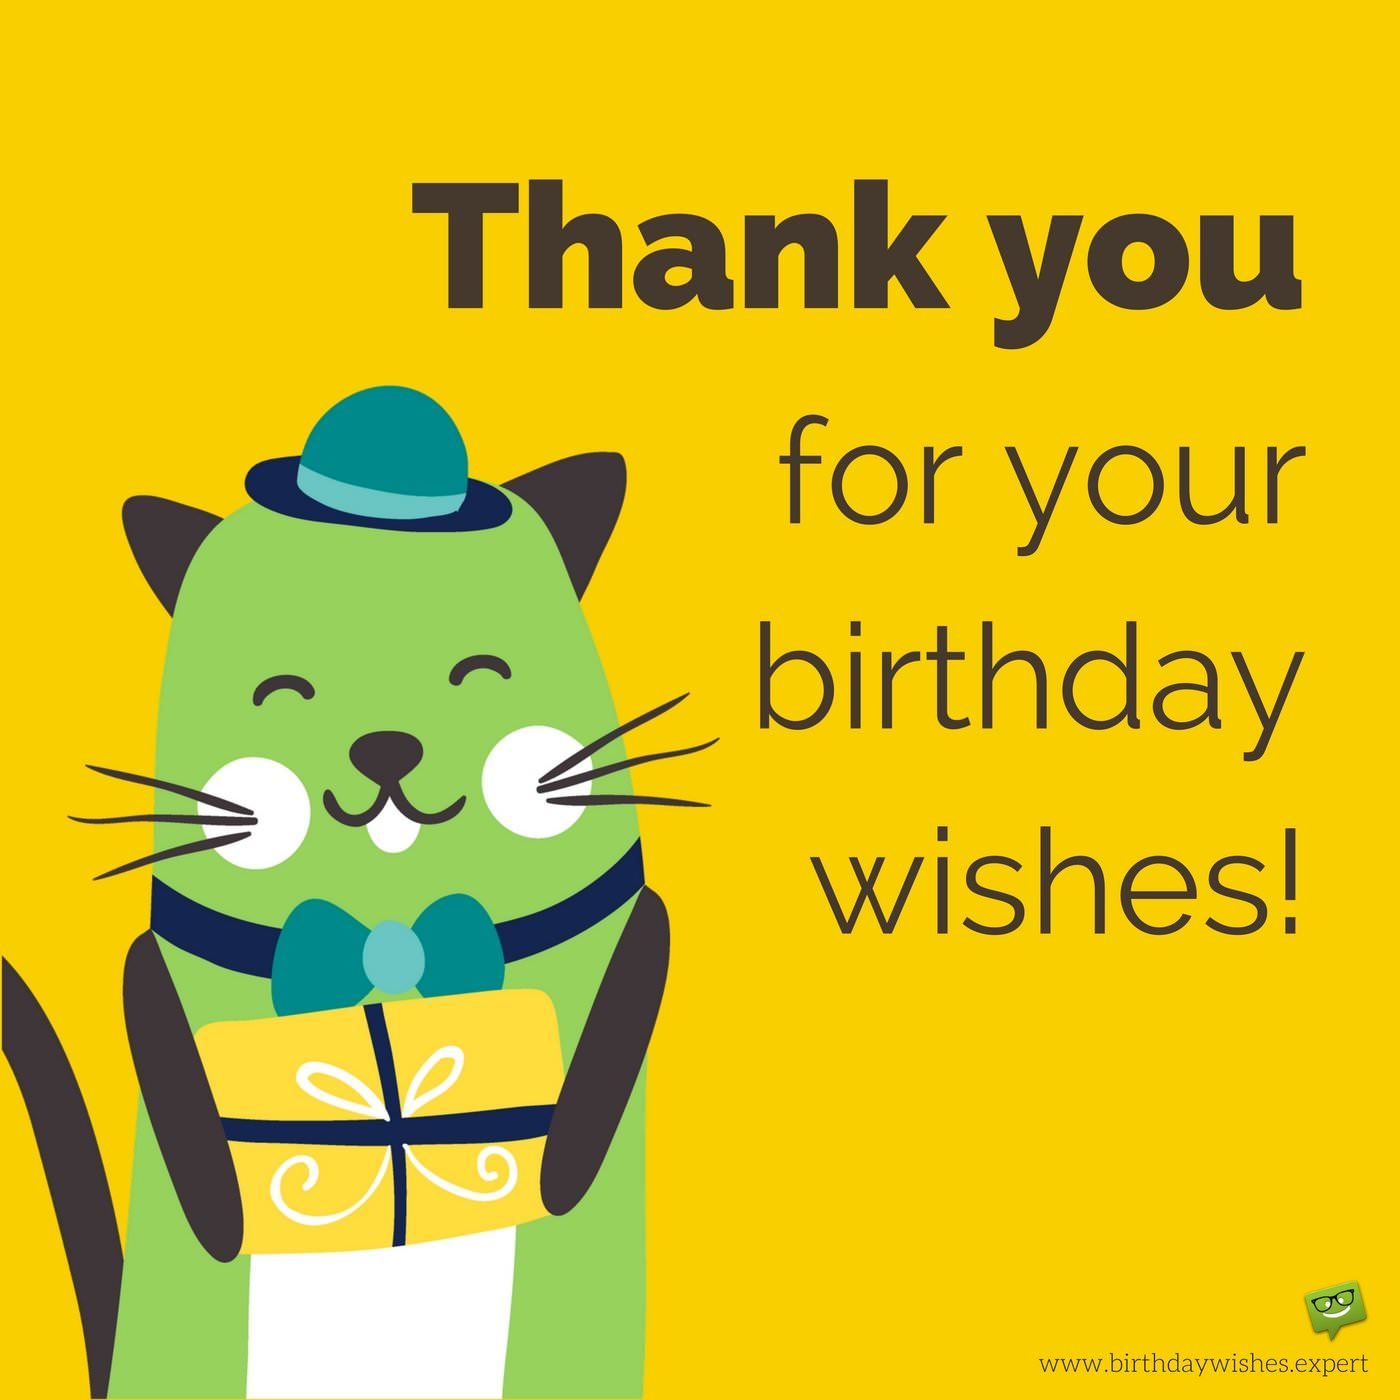 appreciation message for birthday wishes ; Cute-thank-you-for-your-birthday-wishes-message-on-image-with-funny-animal-holding-a-gift